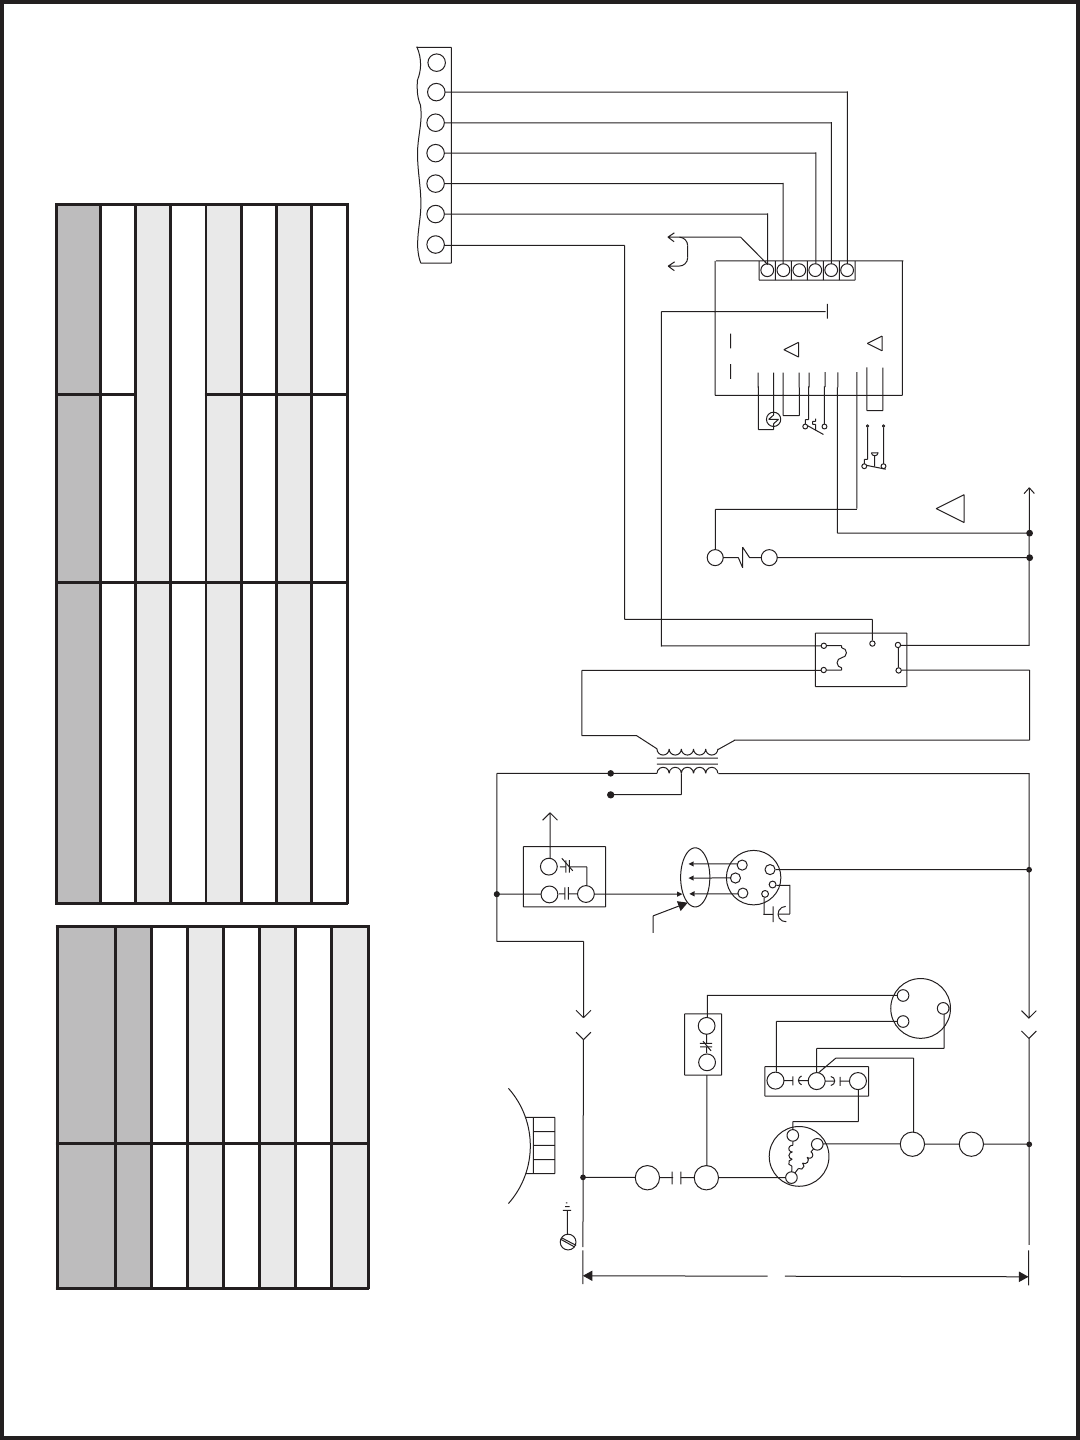 c397f5ec 7b19 4d39 ad3b 82fd35bfa757 bgb page 11 of ducane (hvac) heat pump (2 4)sh13 user guide ducane heat pump wiring diagram at crackthecode.co